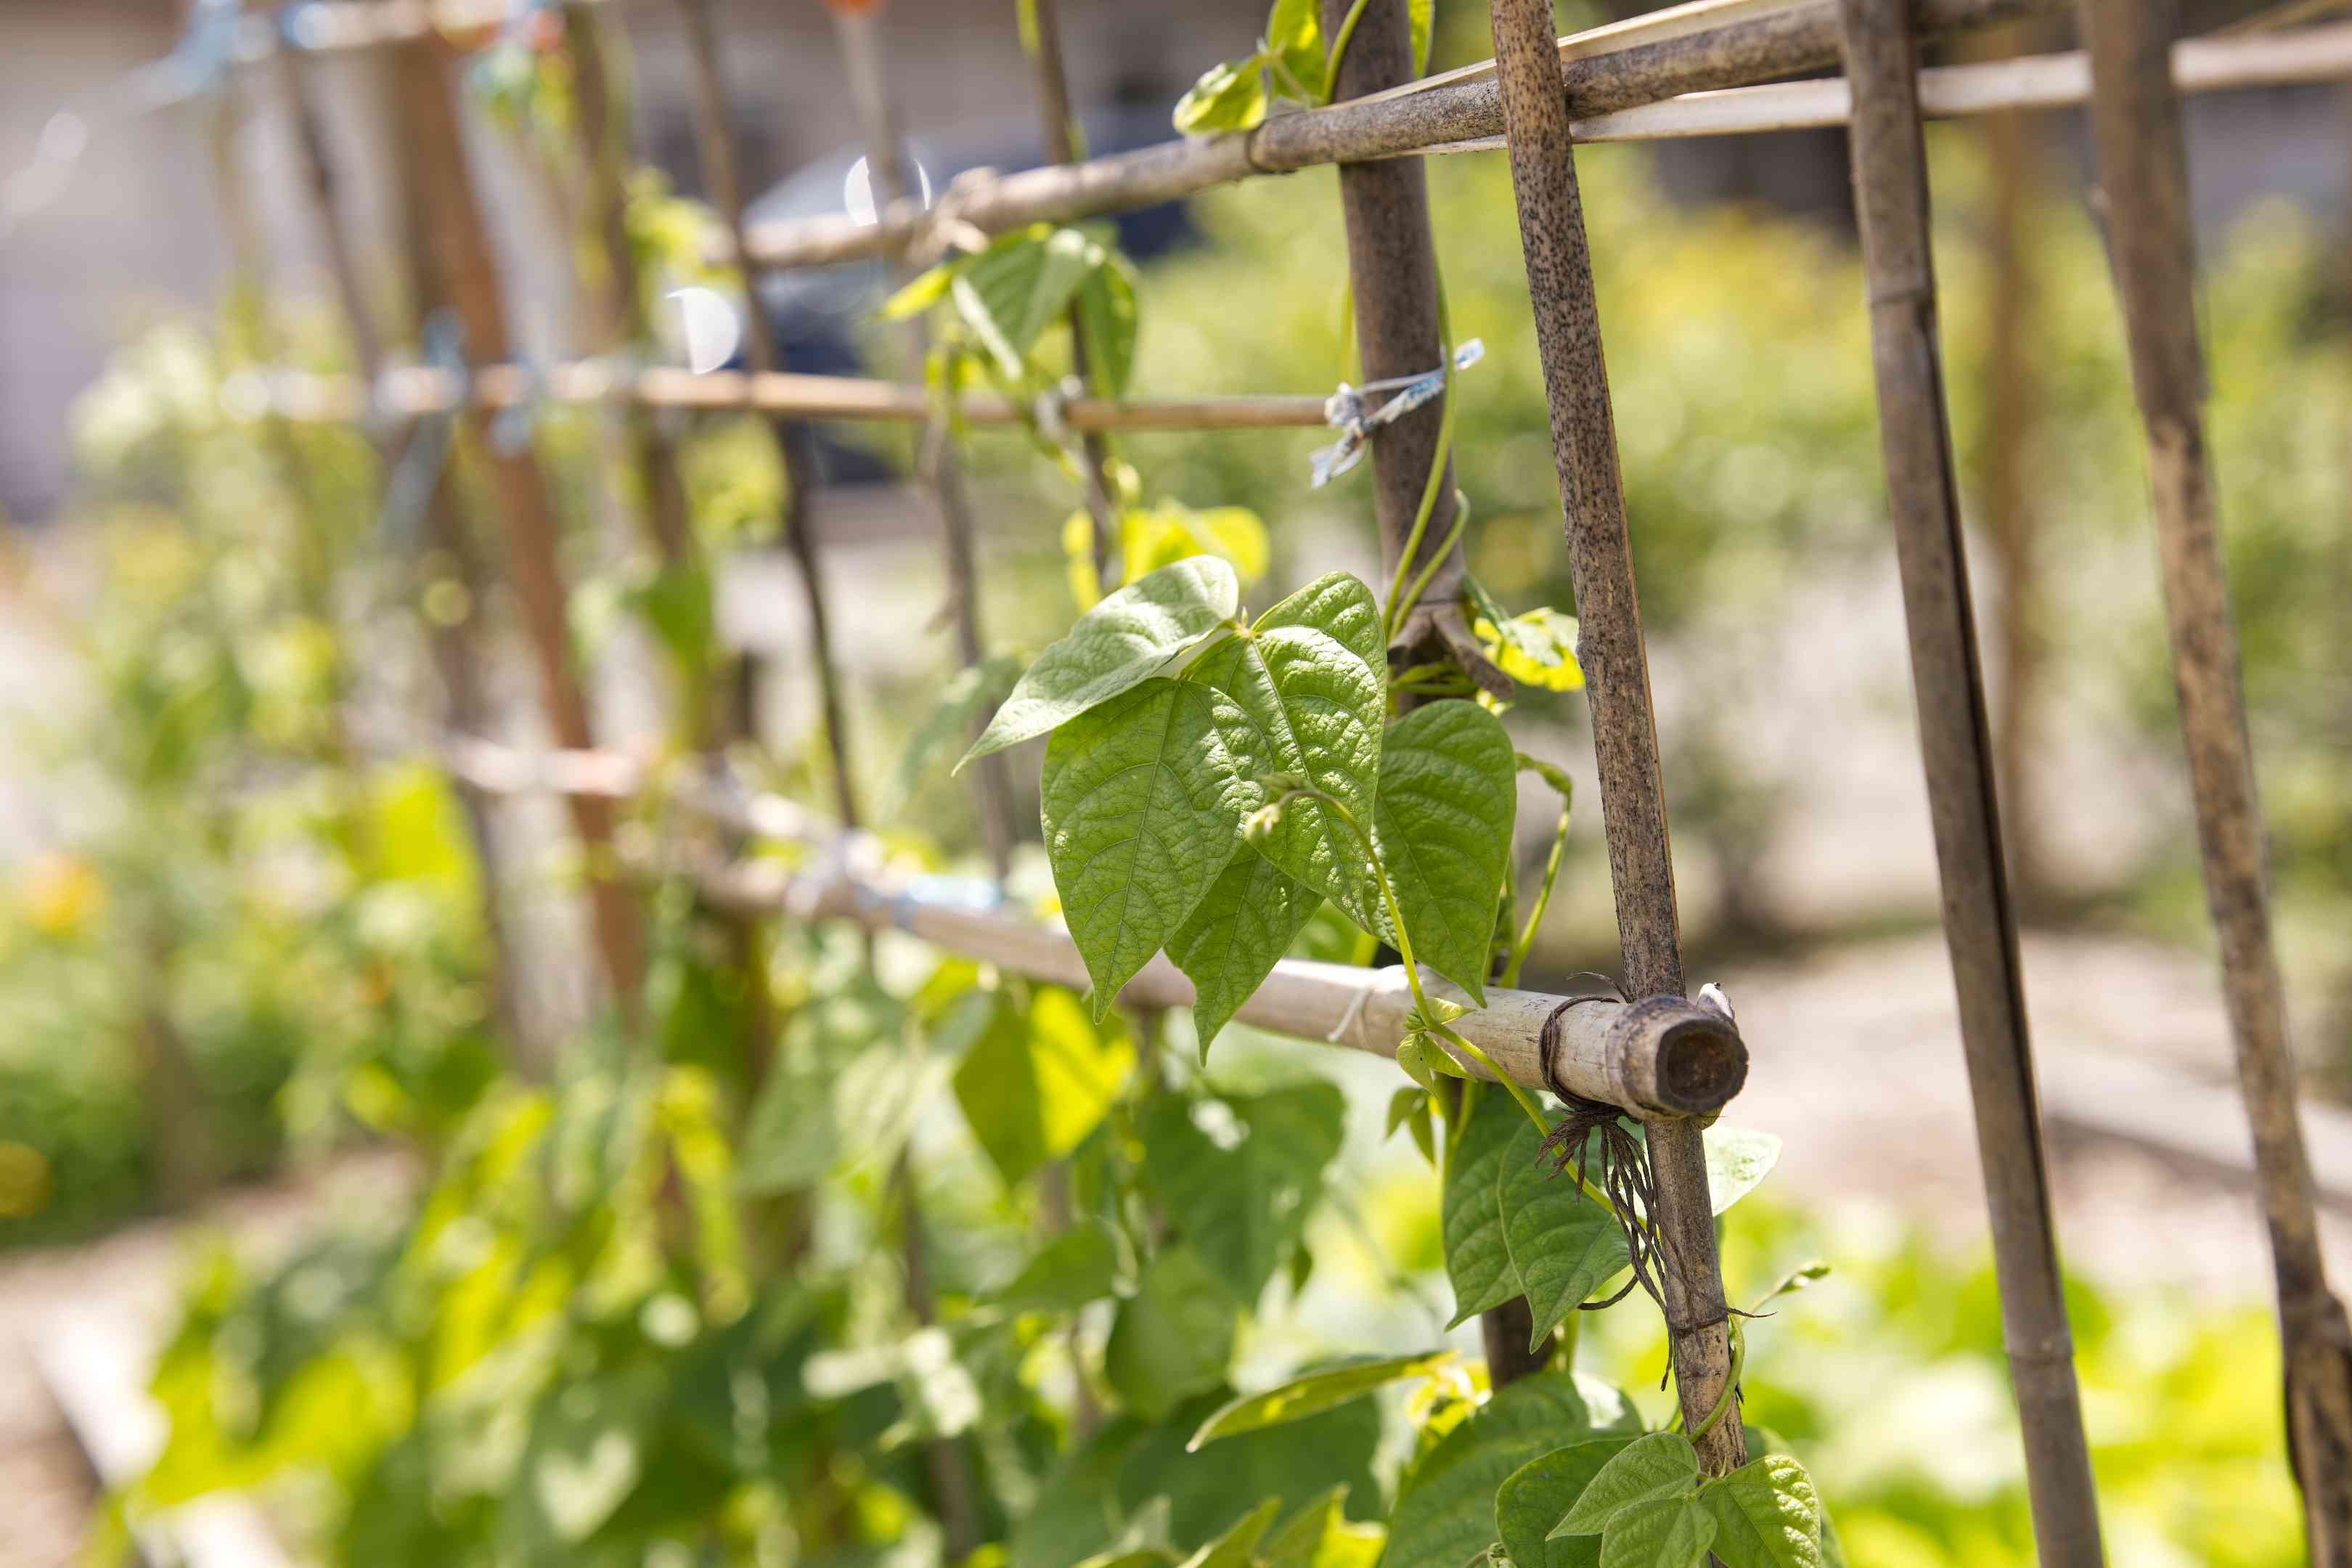 wooden and bamboo trellis with climbing green vines in garden